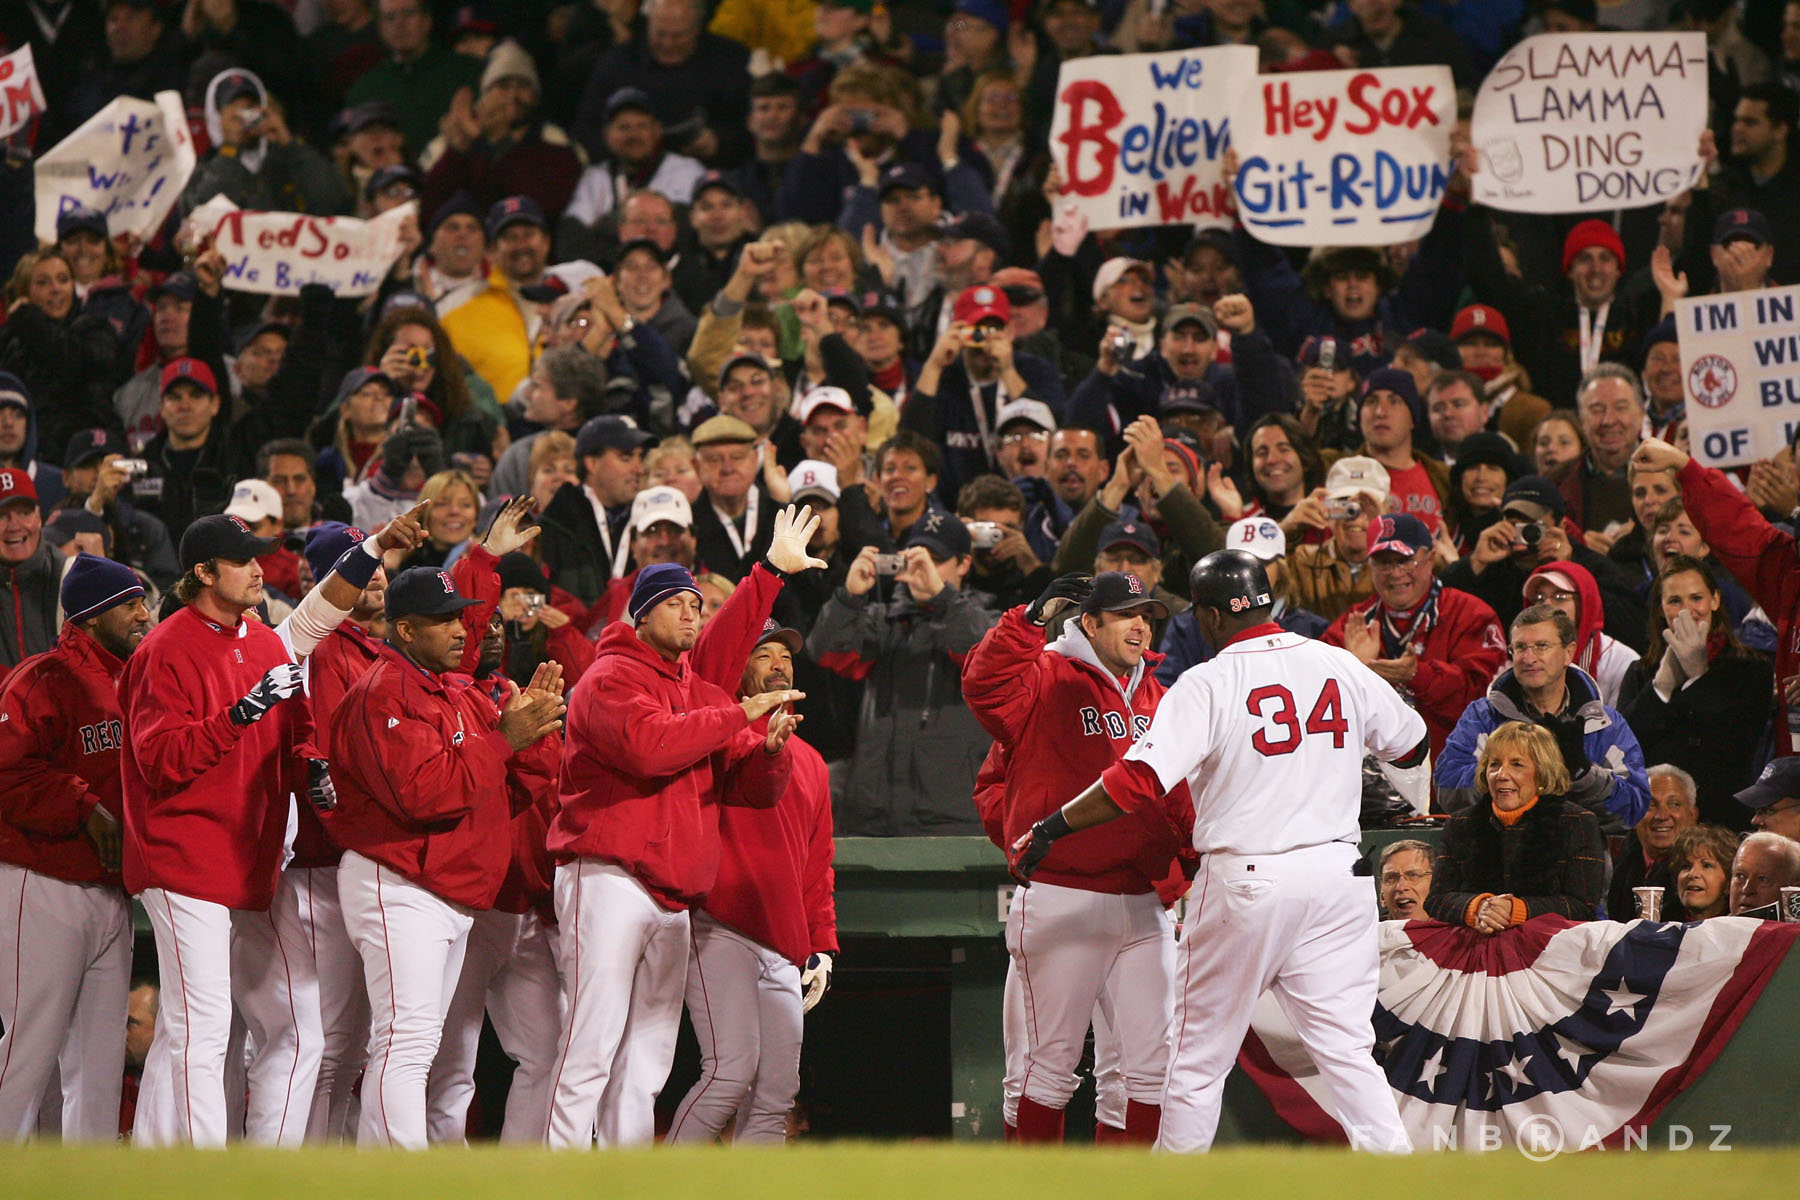 2004's Game 1 goes to the Red Sox.